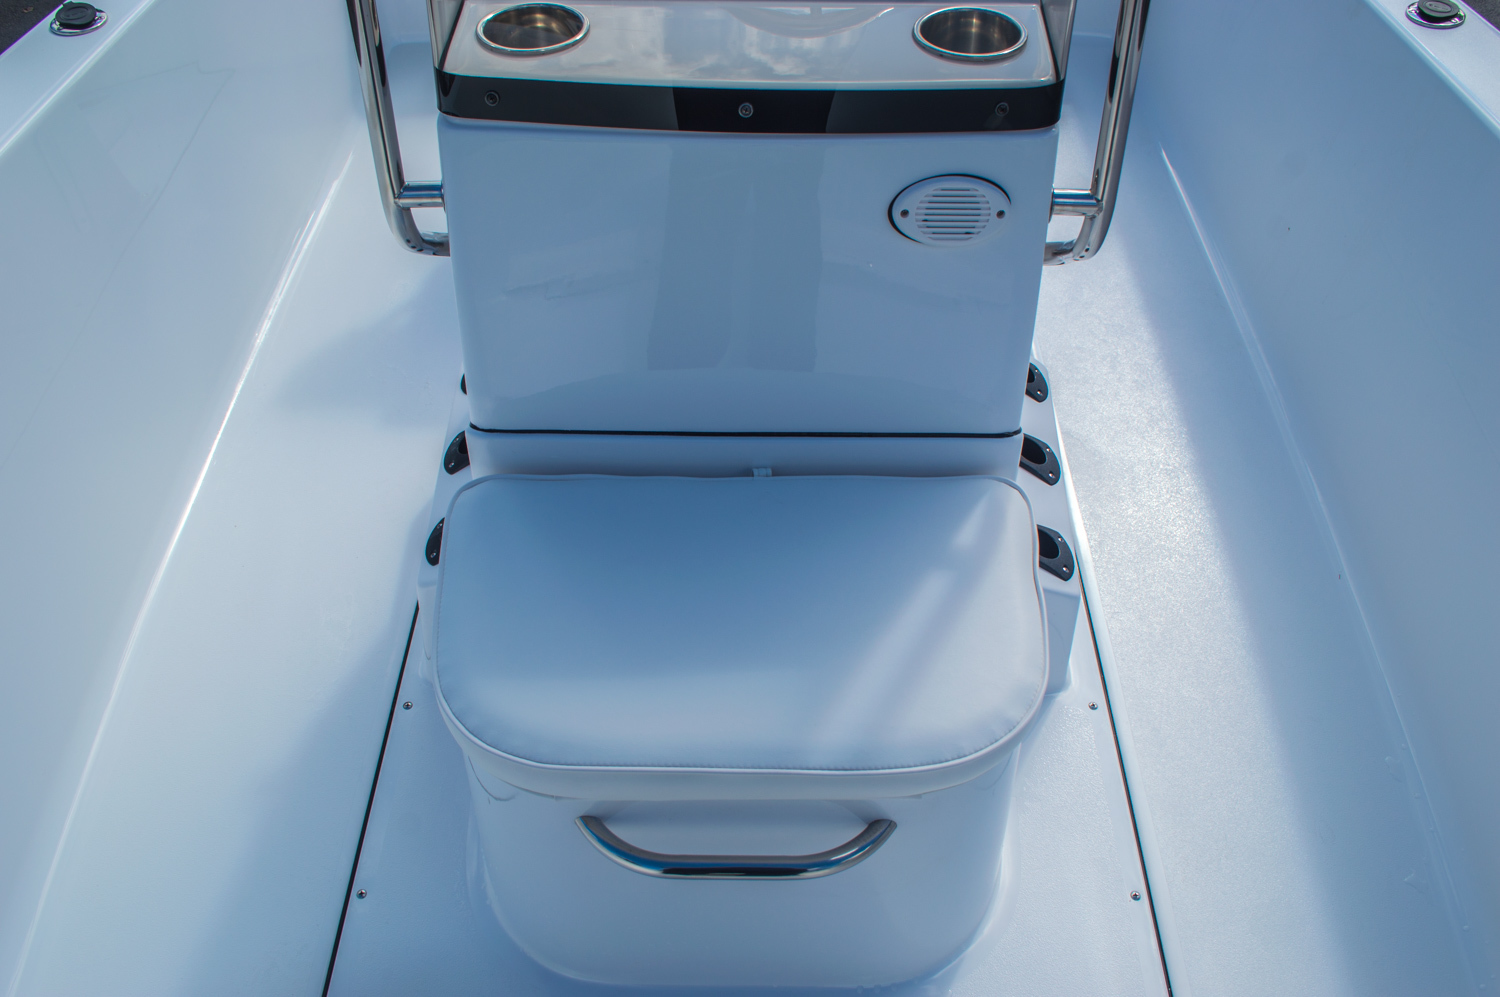 Thumbnail 45 for New 2016 Sportsman 19 Island Reef boat for sale in West Palm Beach, FL